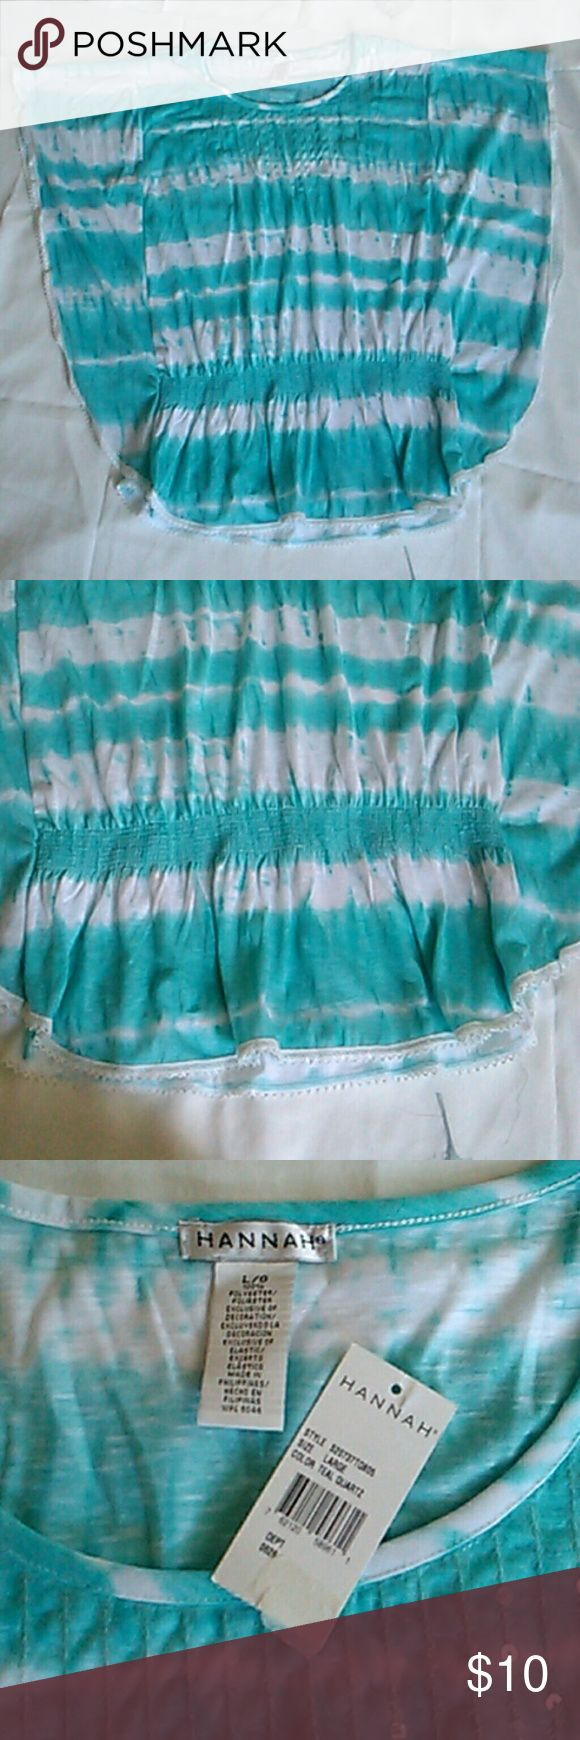 Blouse Batwing Tie-dye New with tags. Hannah Batwing blue and white tie-dye shirt.  Elastic around the waist. Clear sequins at top of shirt. Hannah Tops Blouses